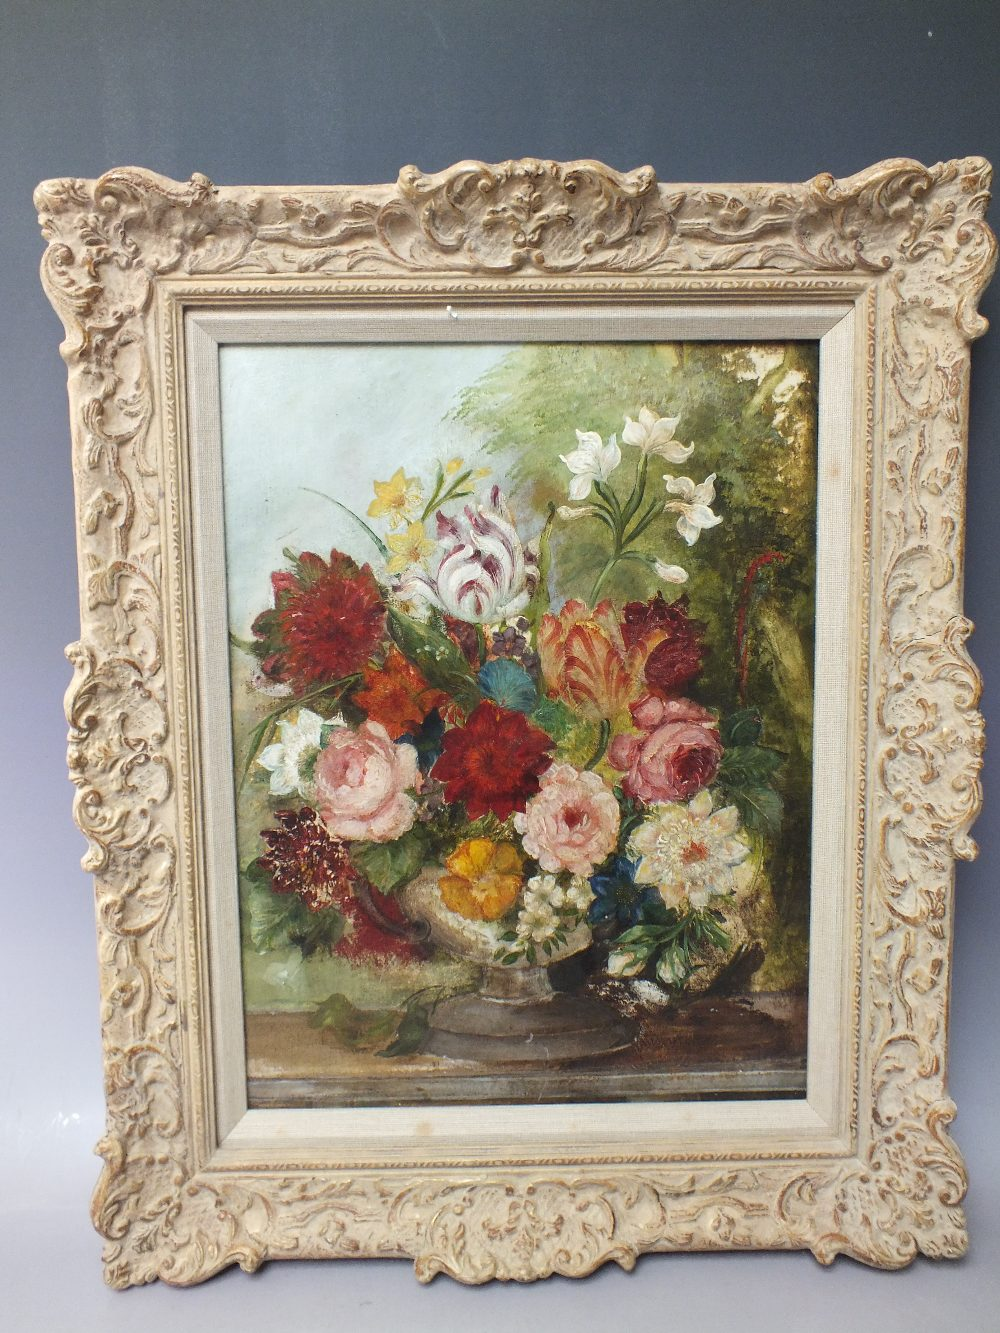 Lot 167 - (XX). A still life study of flowers in a vase on a marble ledge, indistinctly signed lower right,